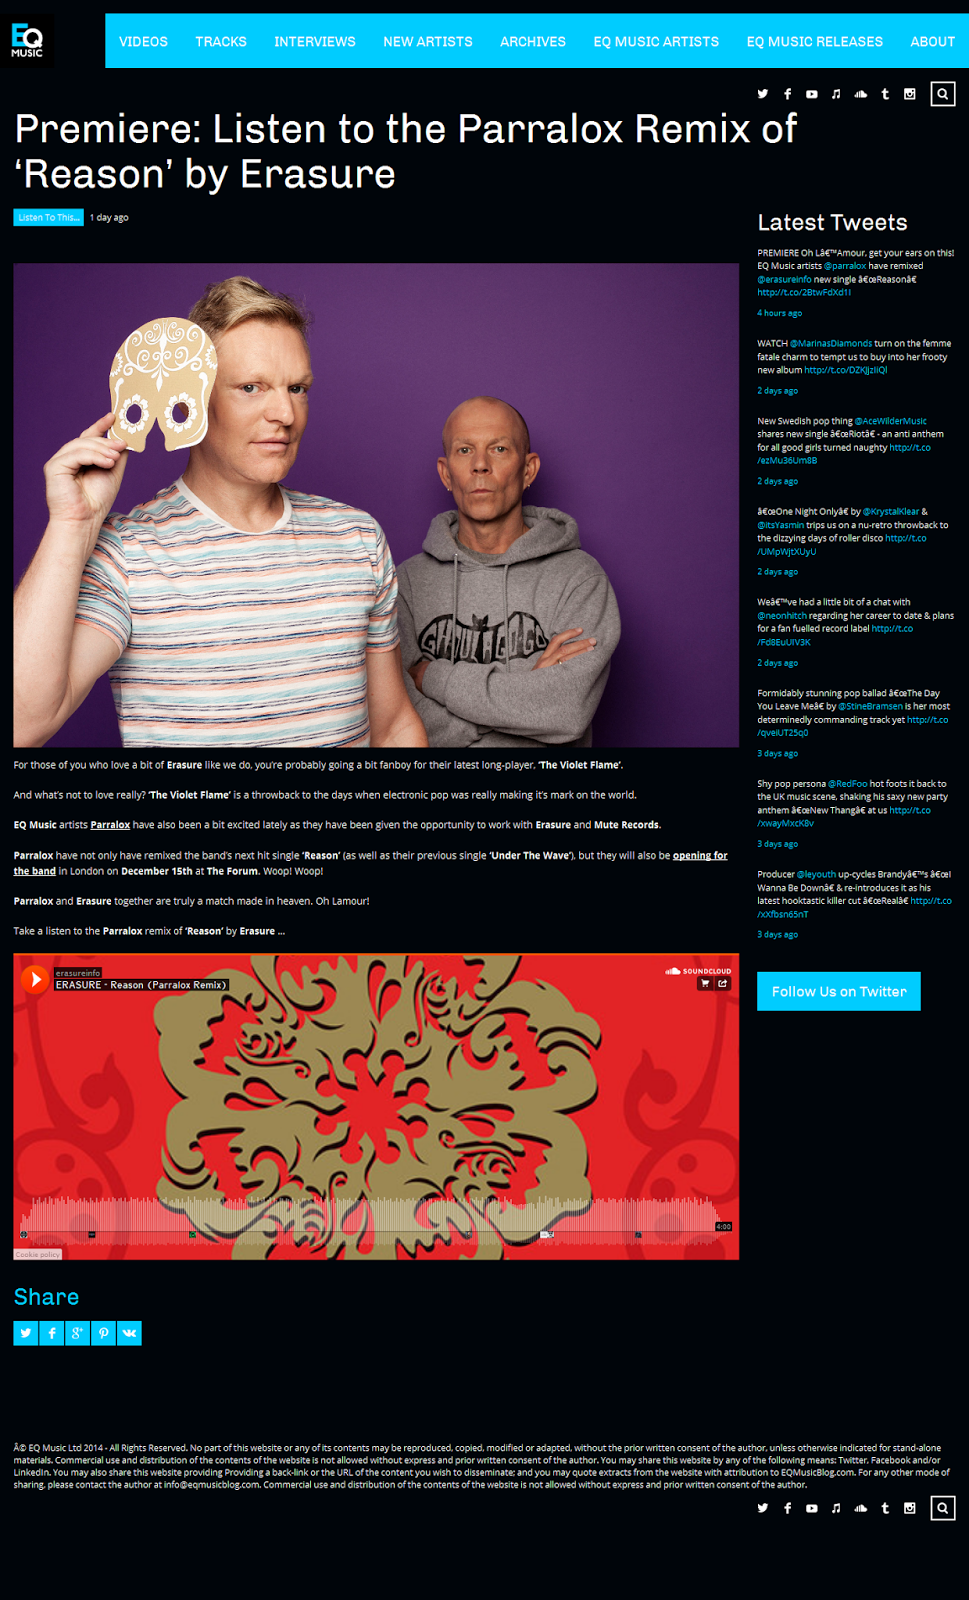 Premiere: Listen to the Parralox Remix of 'Reason' by Erasure